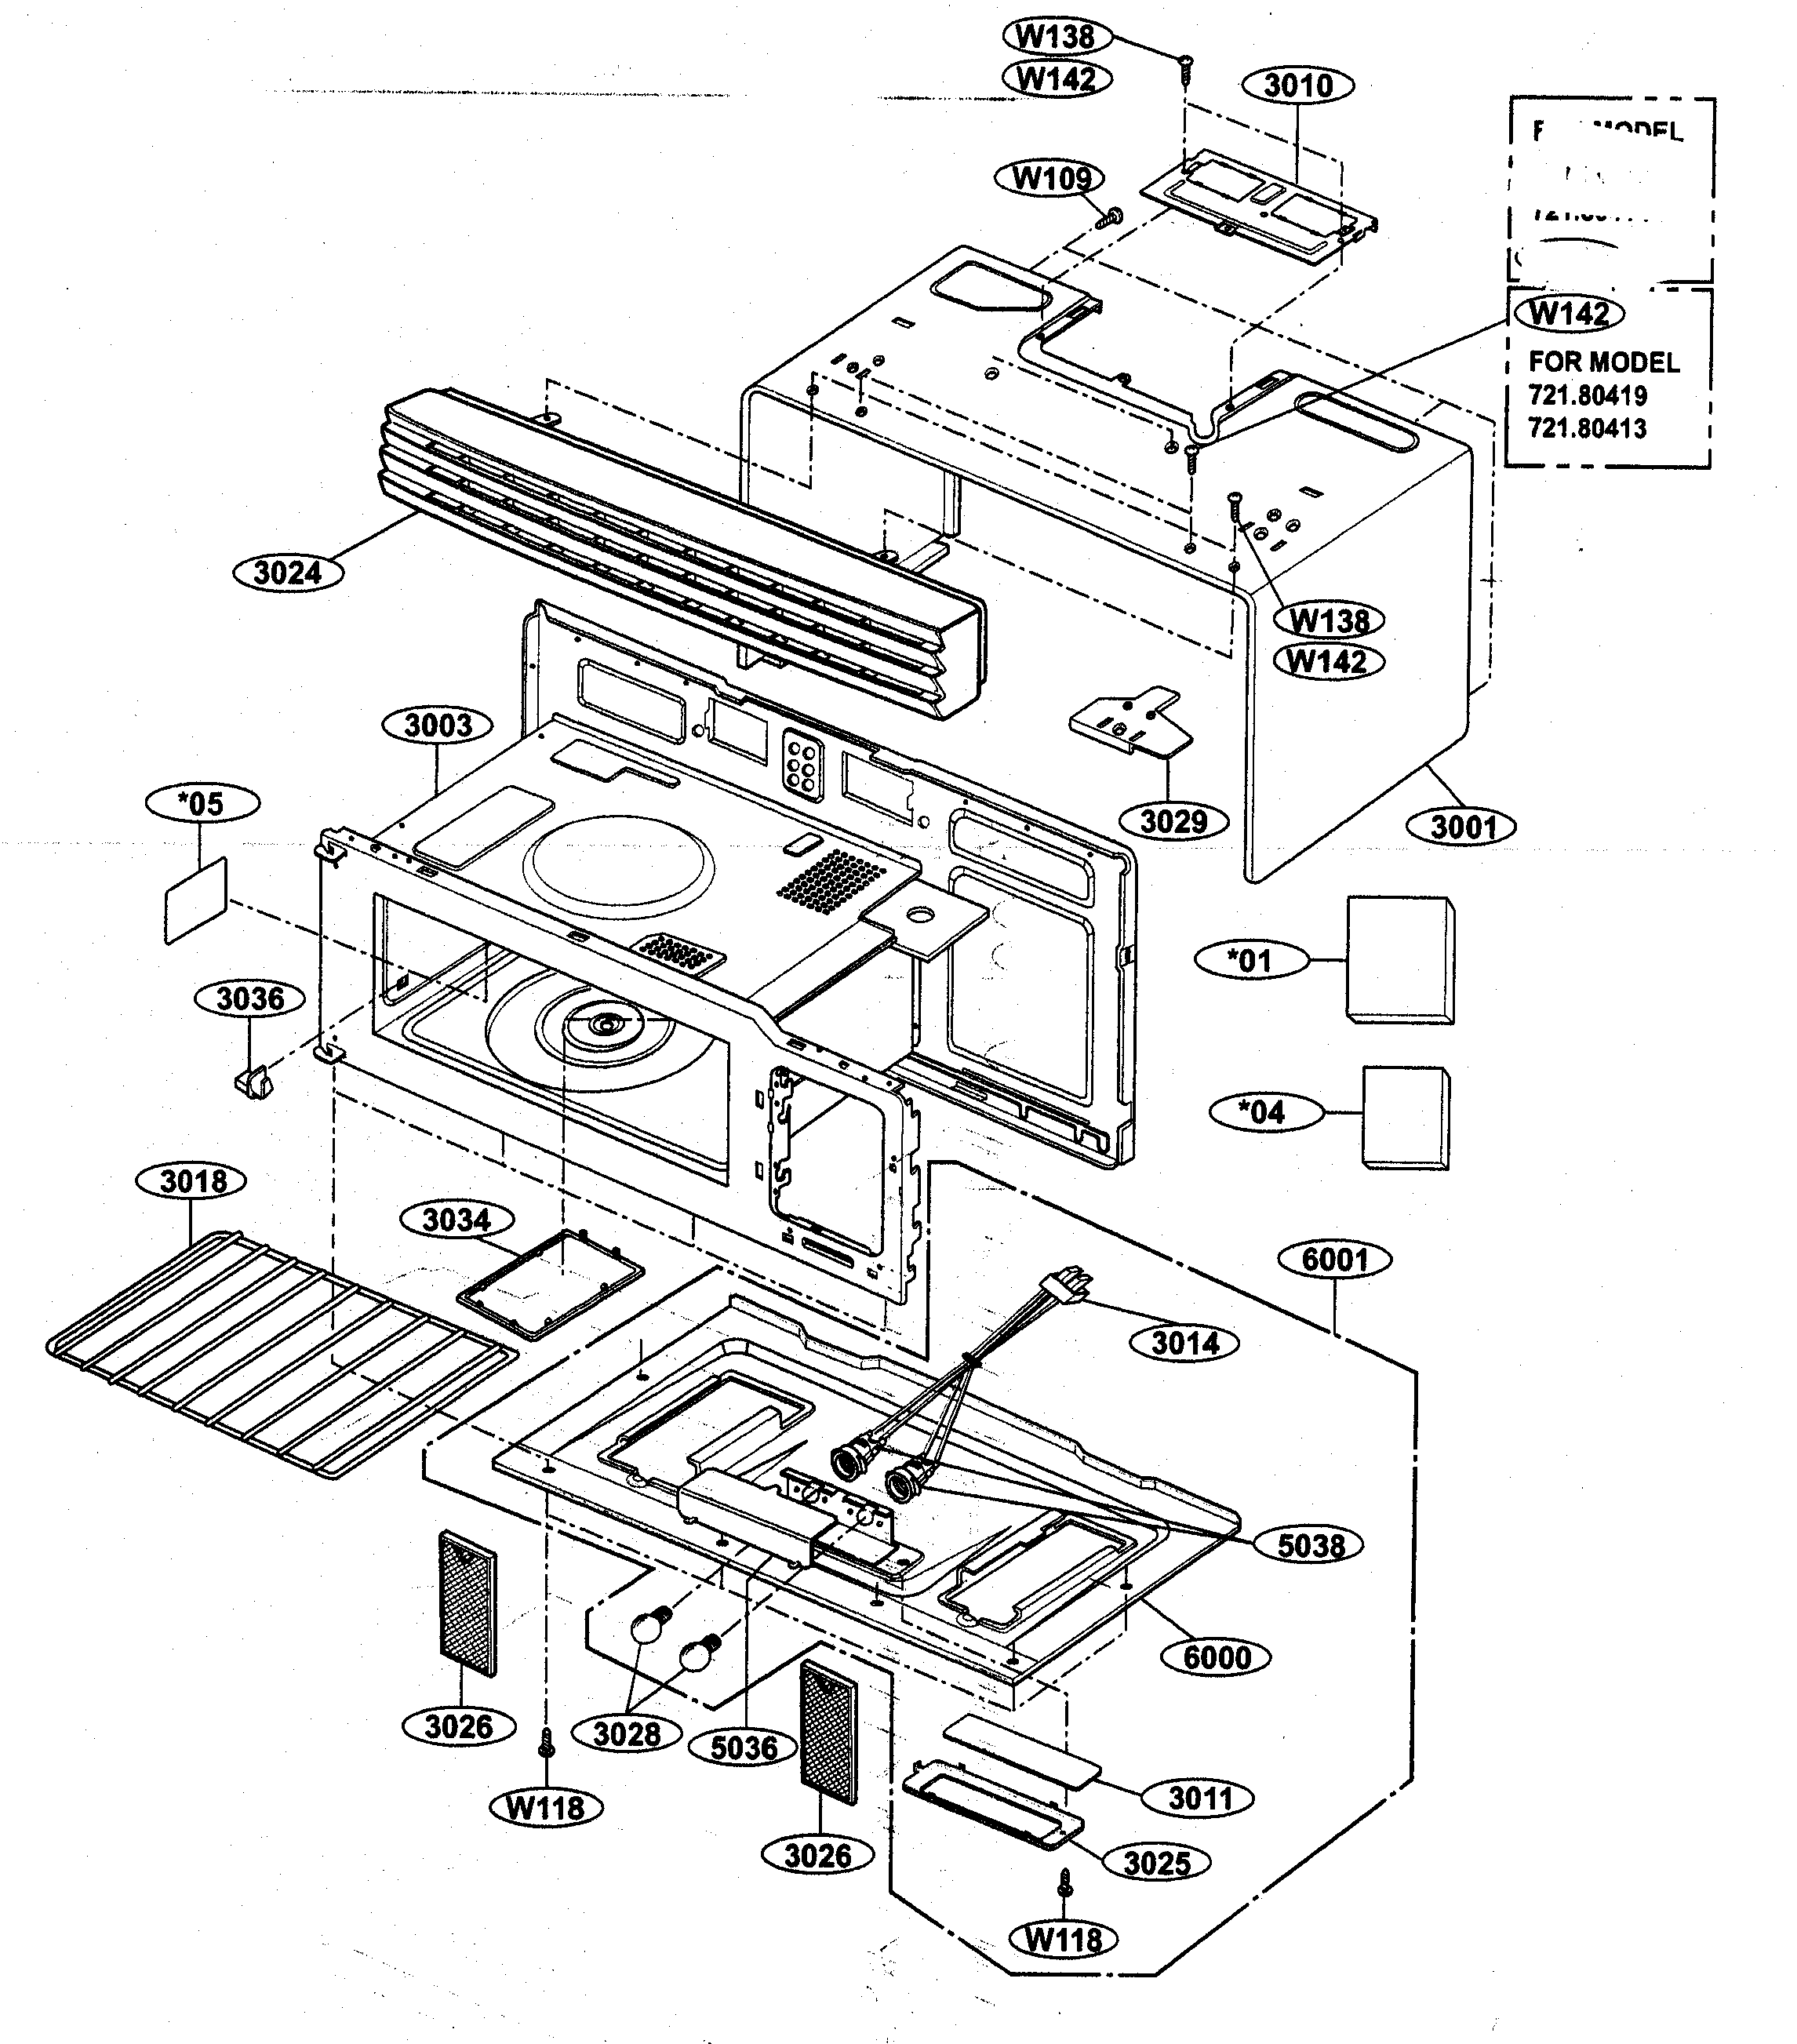 OVEN CAVITY PARTS Diagram & Parts List for Model